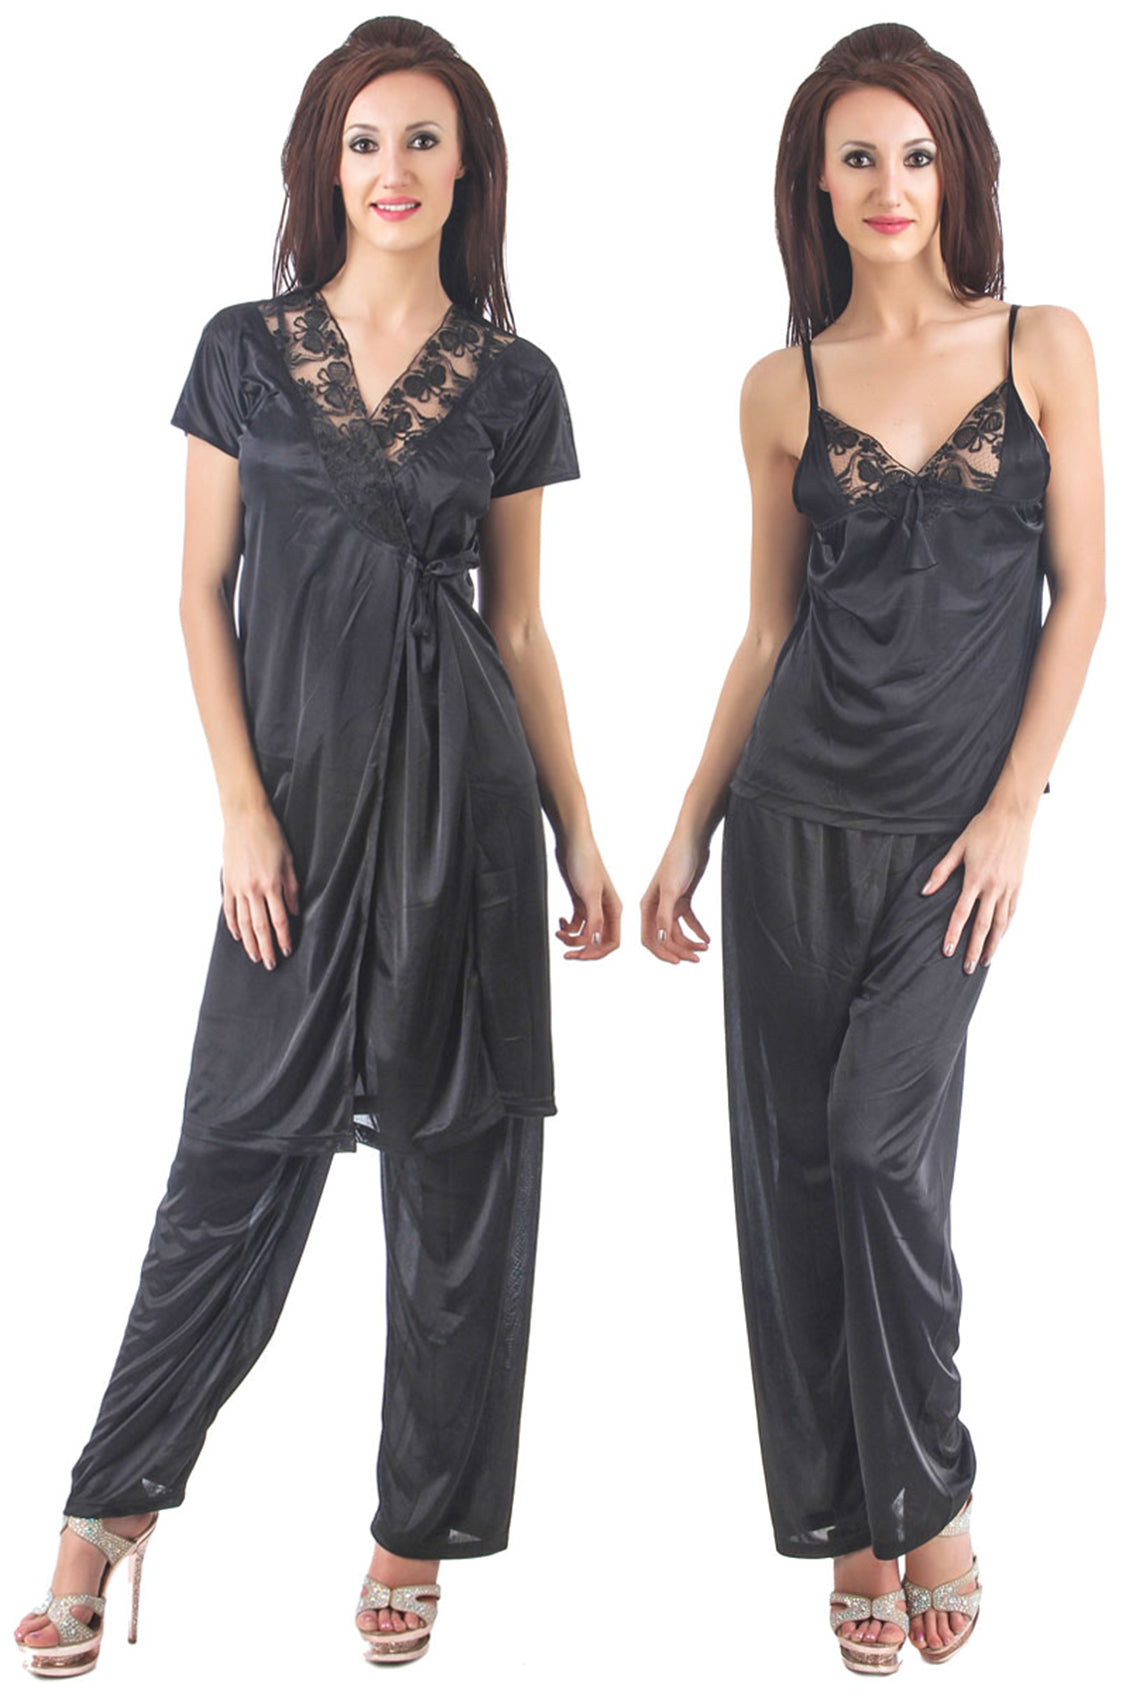 Fasense satin nightwear 3pc top and pajama with robe night suit for women DP090 - fasensestore